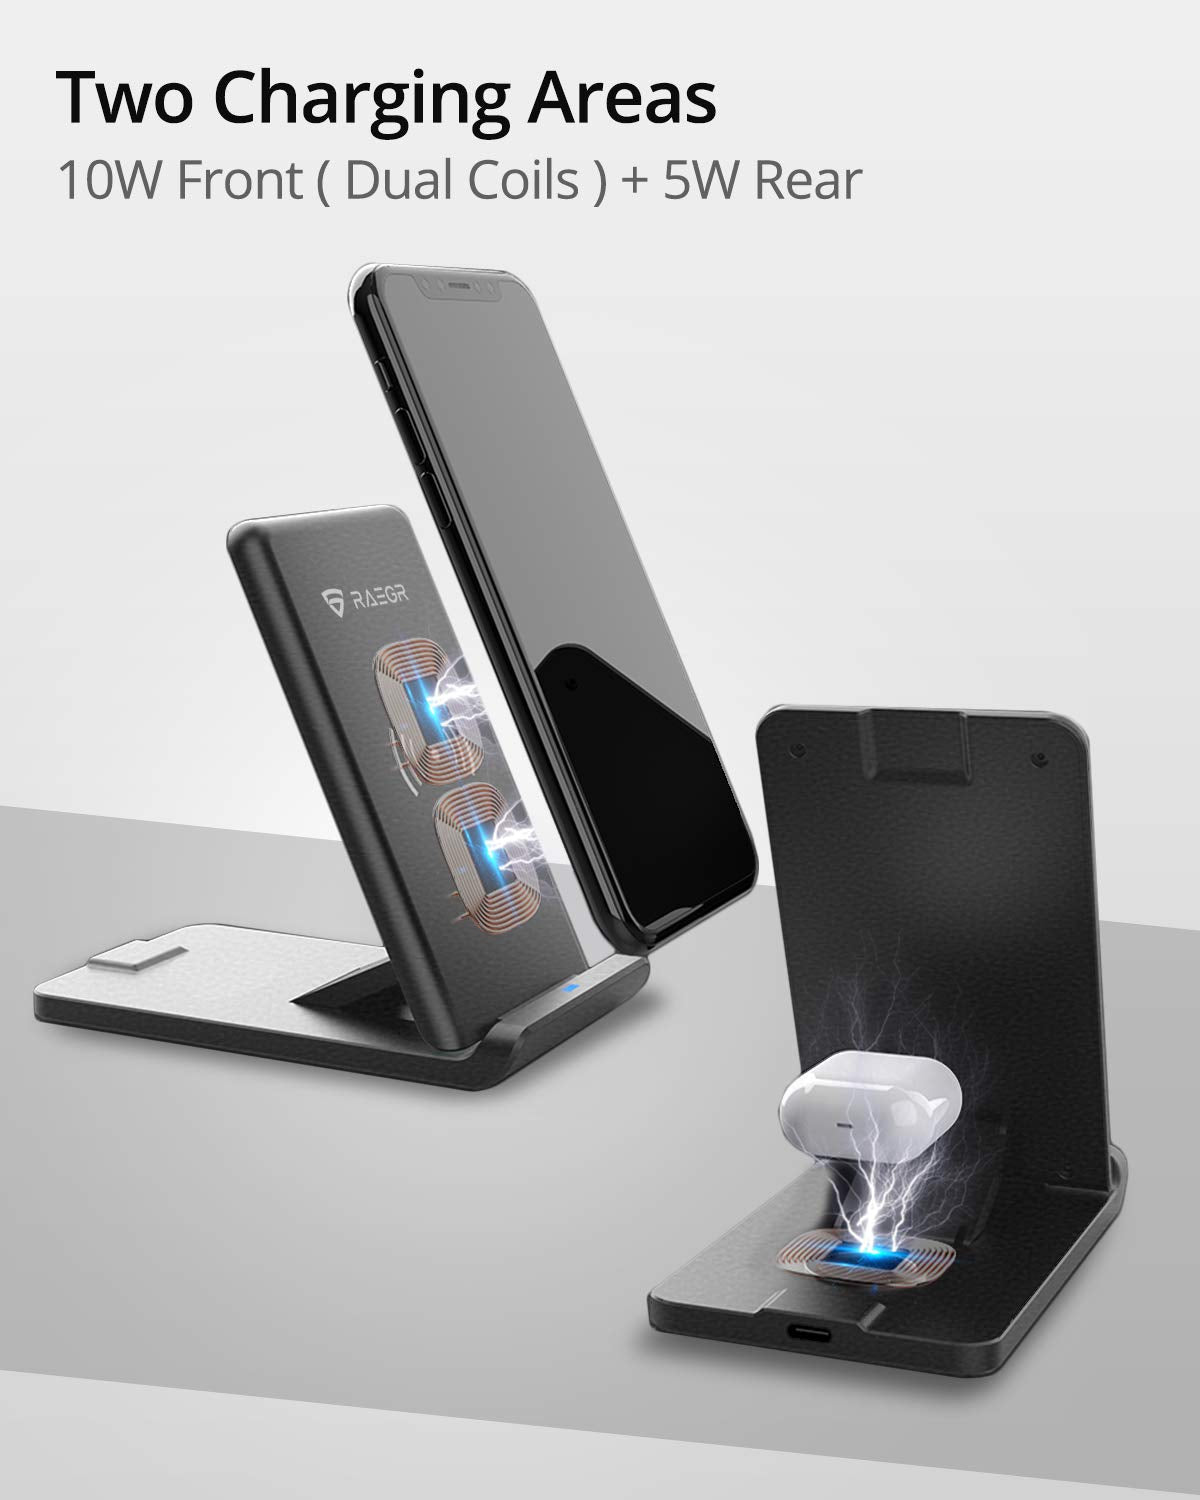 RAEGR Arc 1100 [2-in-1] Wireless Charging Stand